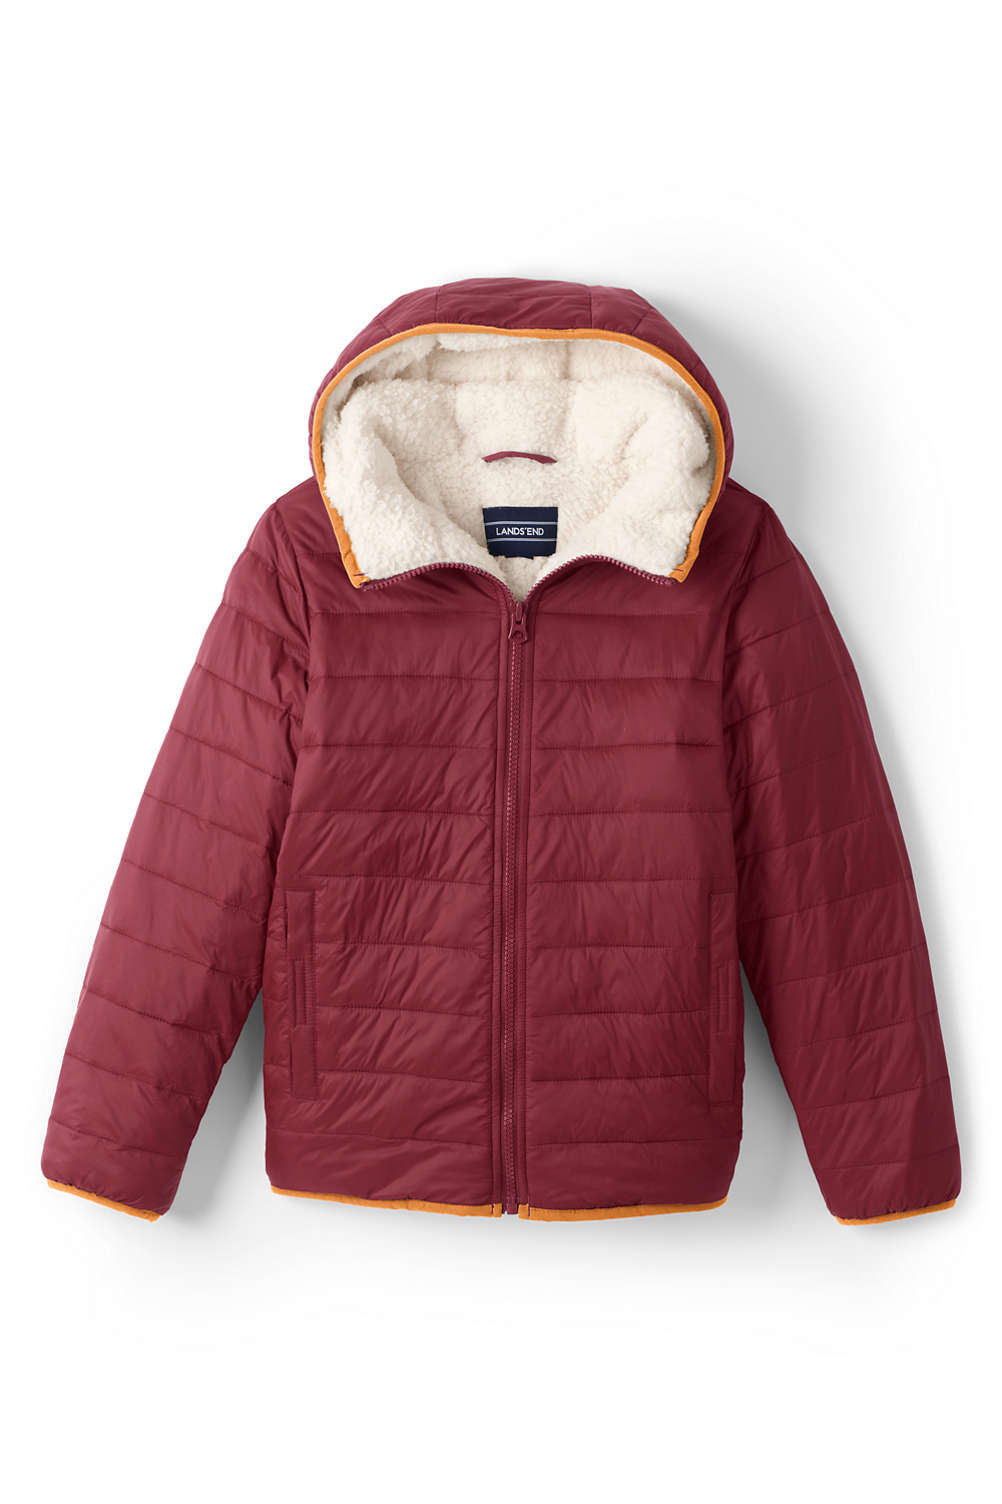 d3ba1b183e64 Kids Winter Fleece Lined Down Alternative ThermoPlume Jacket from ...